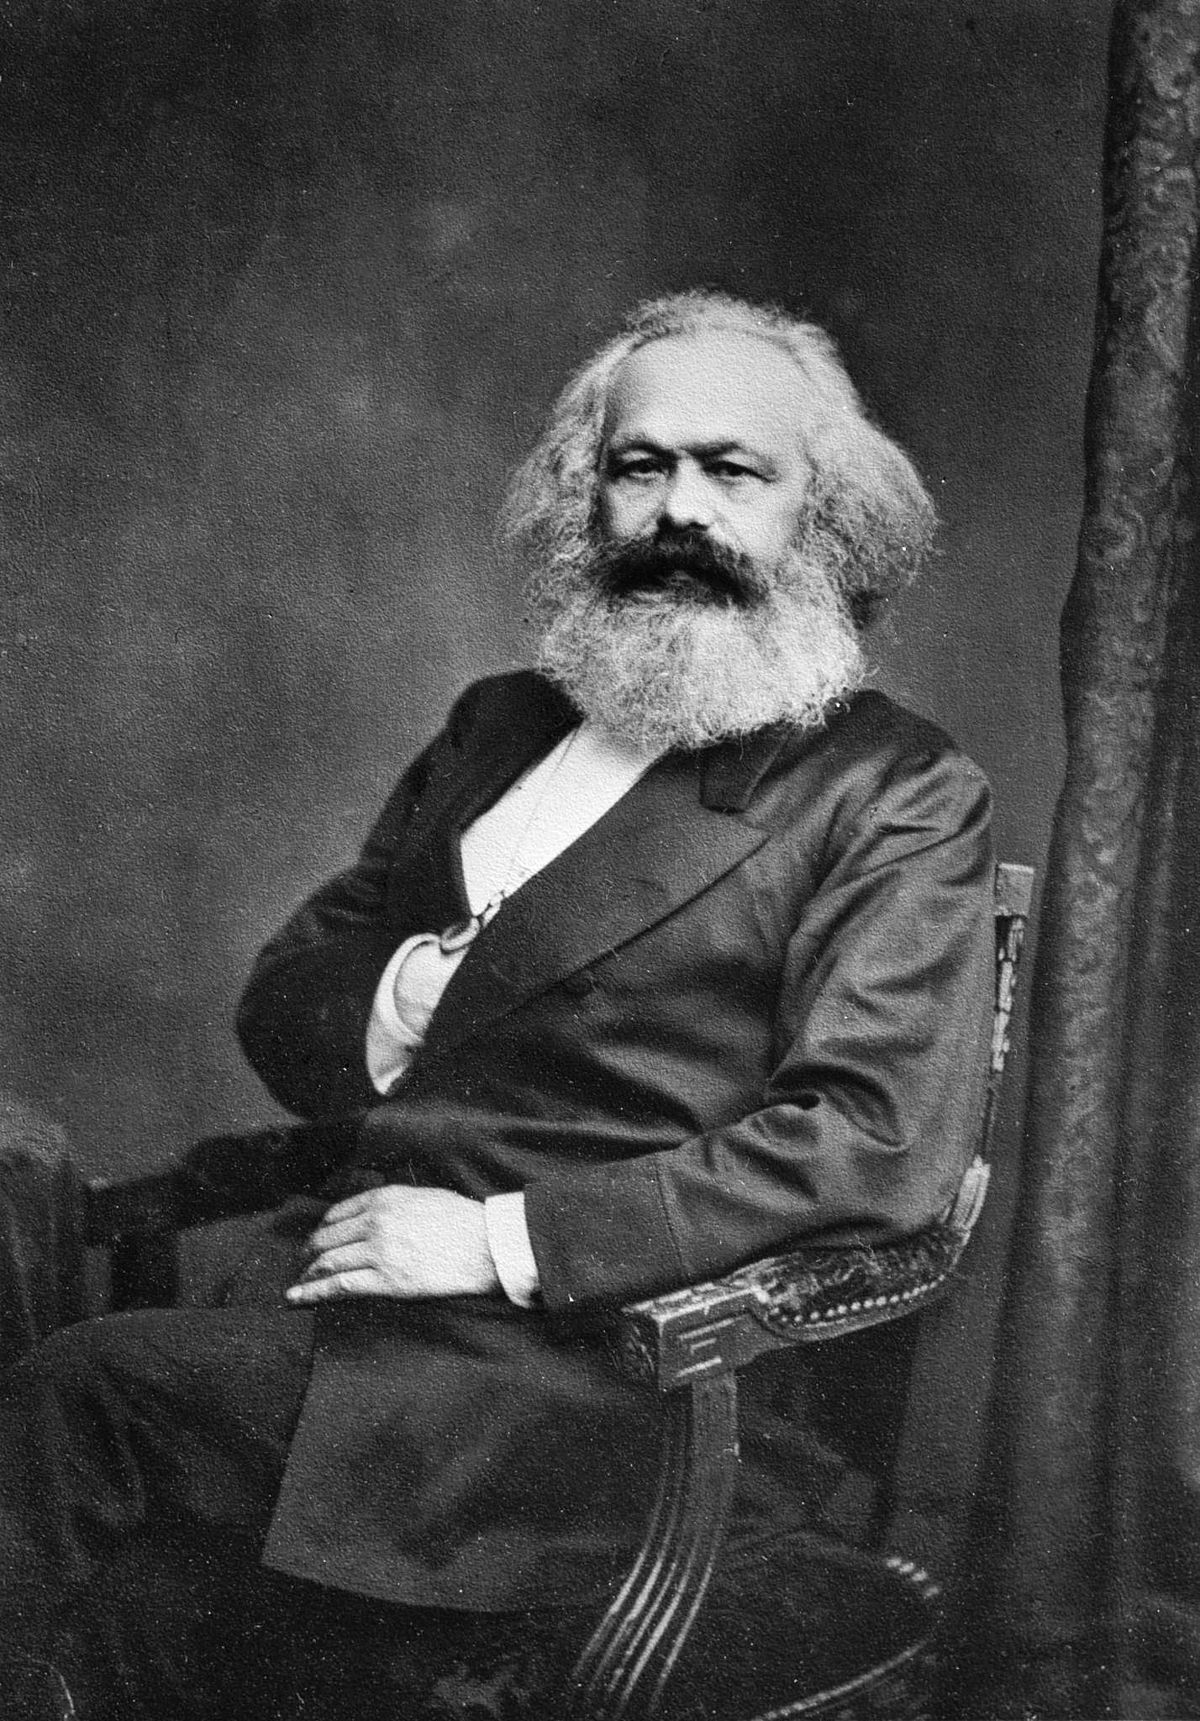 history of karl marx The communist manifesto, by karl marx and friedrich engels – marx and engels' 1848 masterpiece – the foundational work of marxism and the most important political text in history – was appropriately published in a year of explosive revolutionary developments across europe.